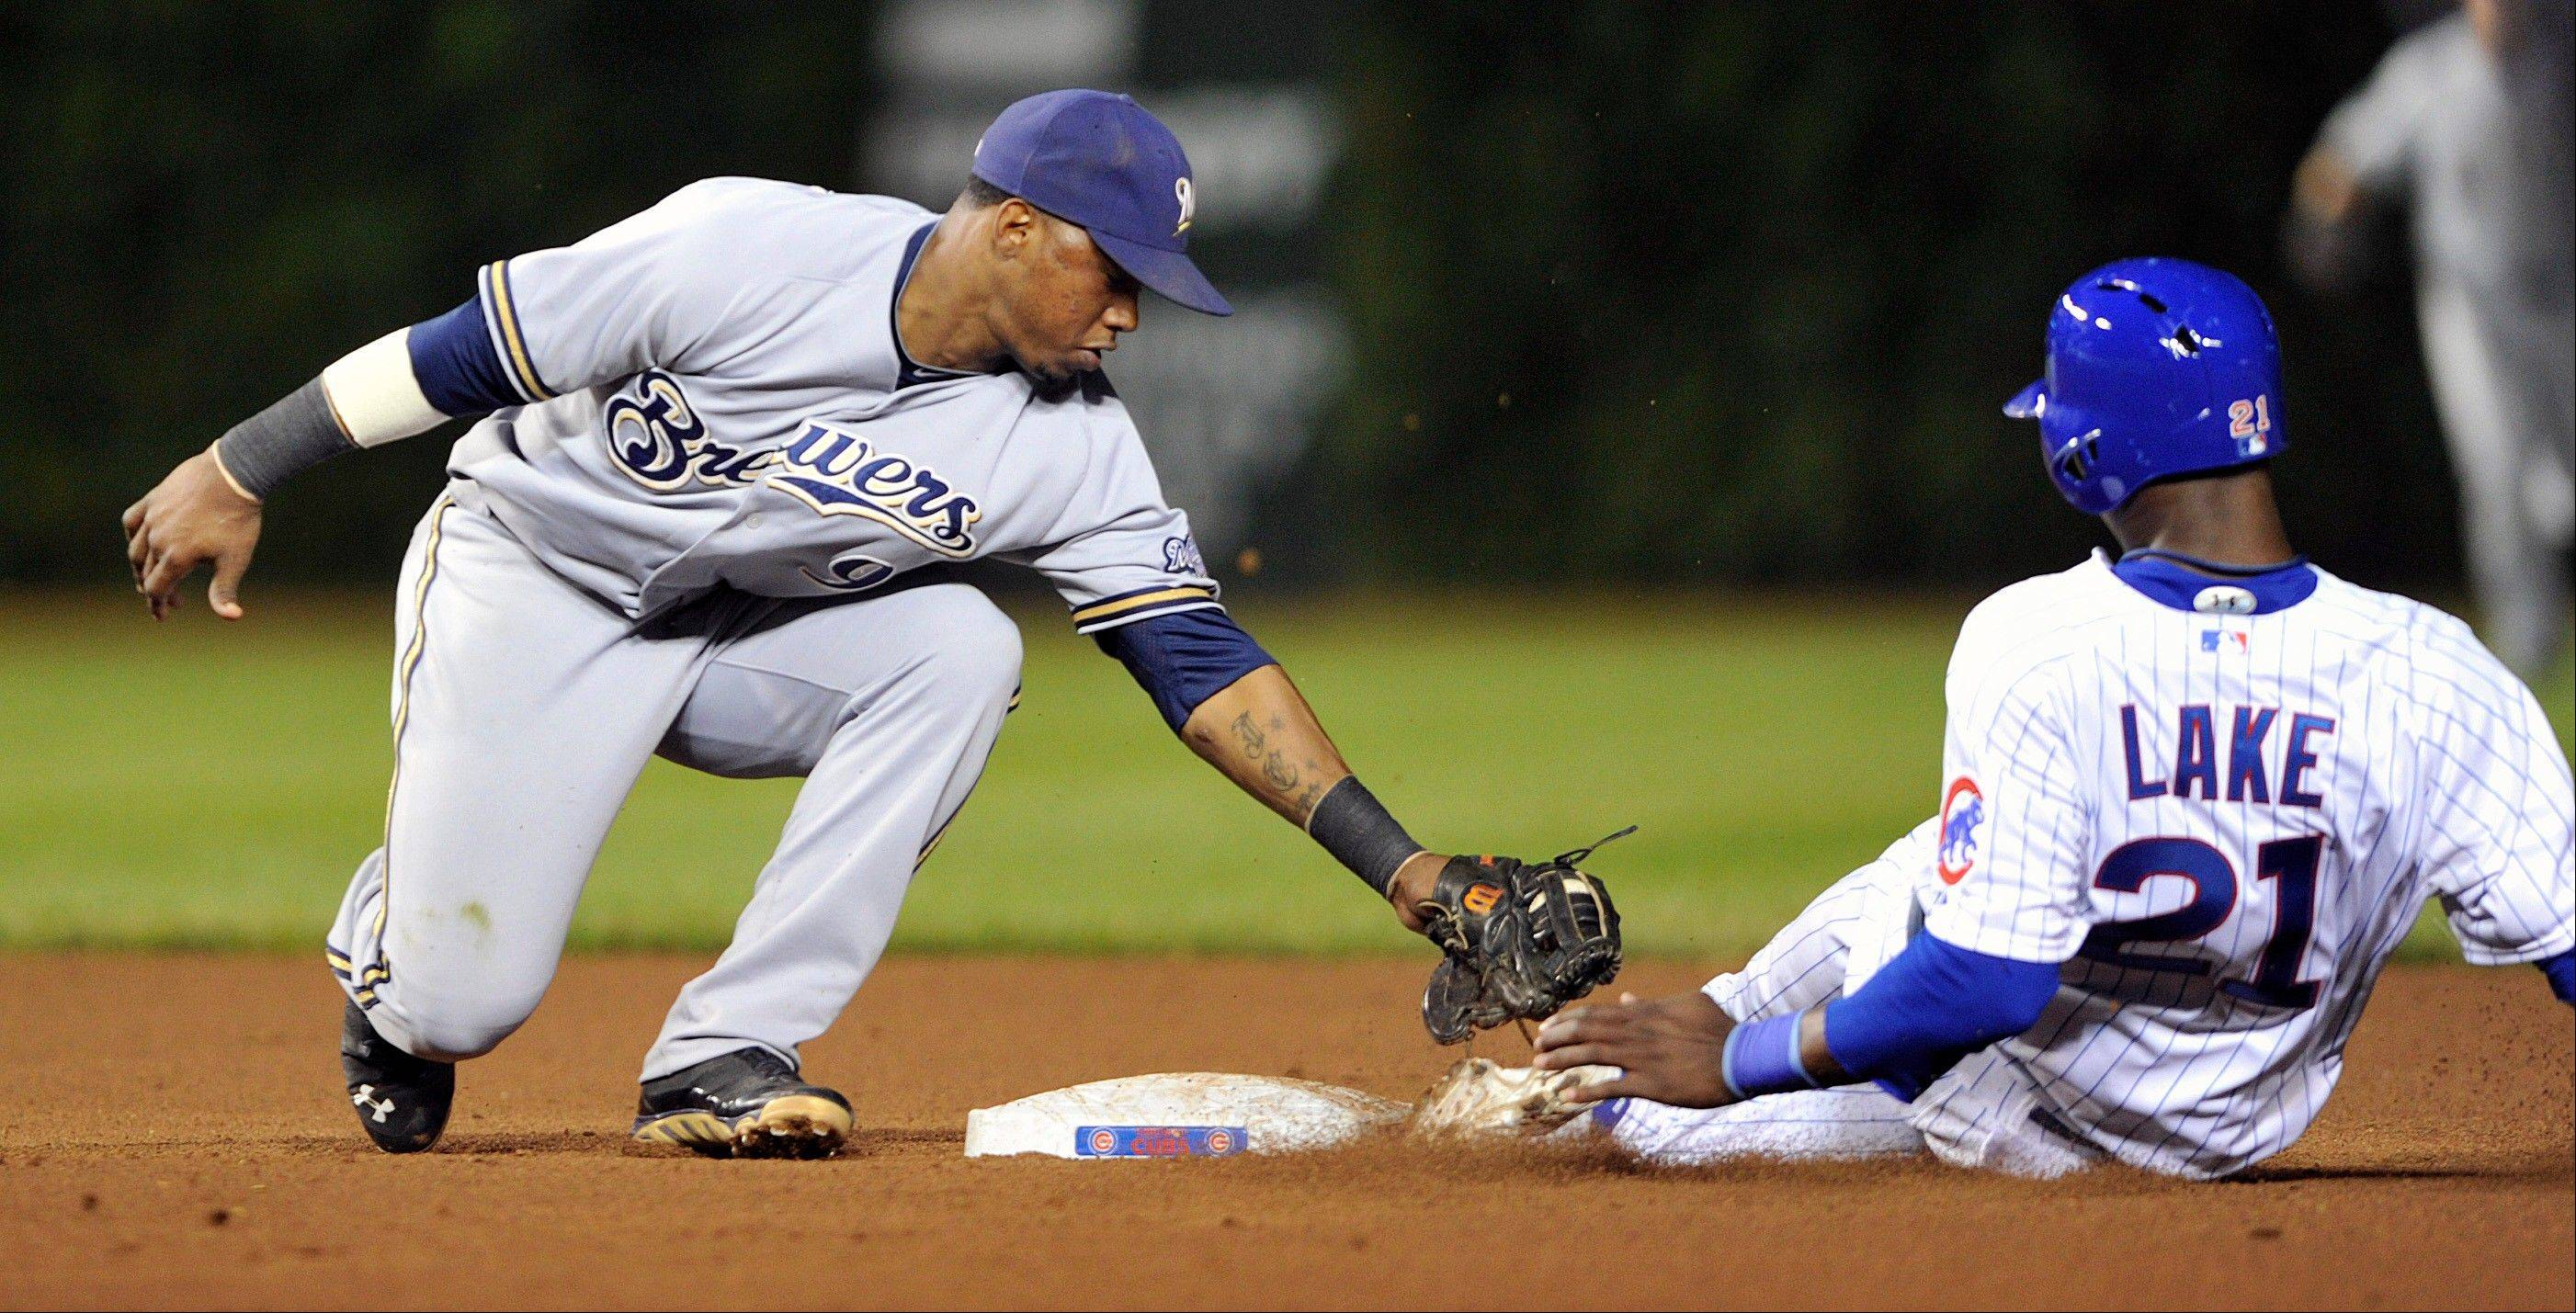 The Milwaukee Brewers' Jean Segura tags out the Cubs' Junior Lake as he tries to steal second base during Monday's seventh inning at Wrigley Field.